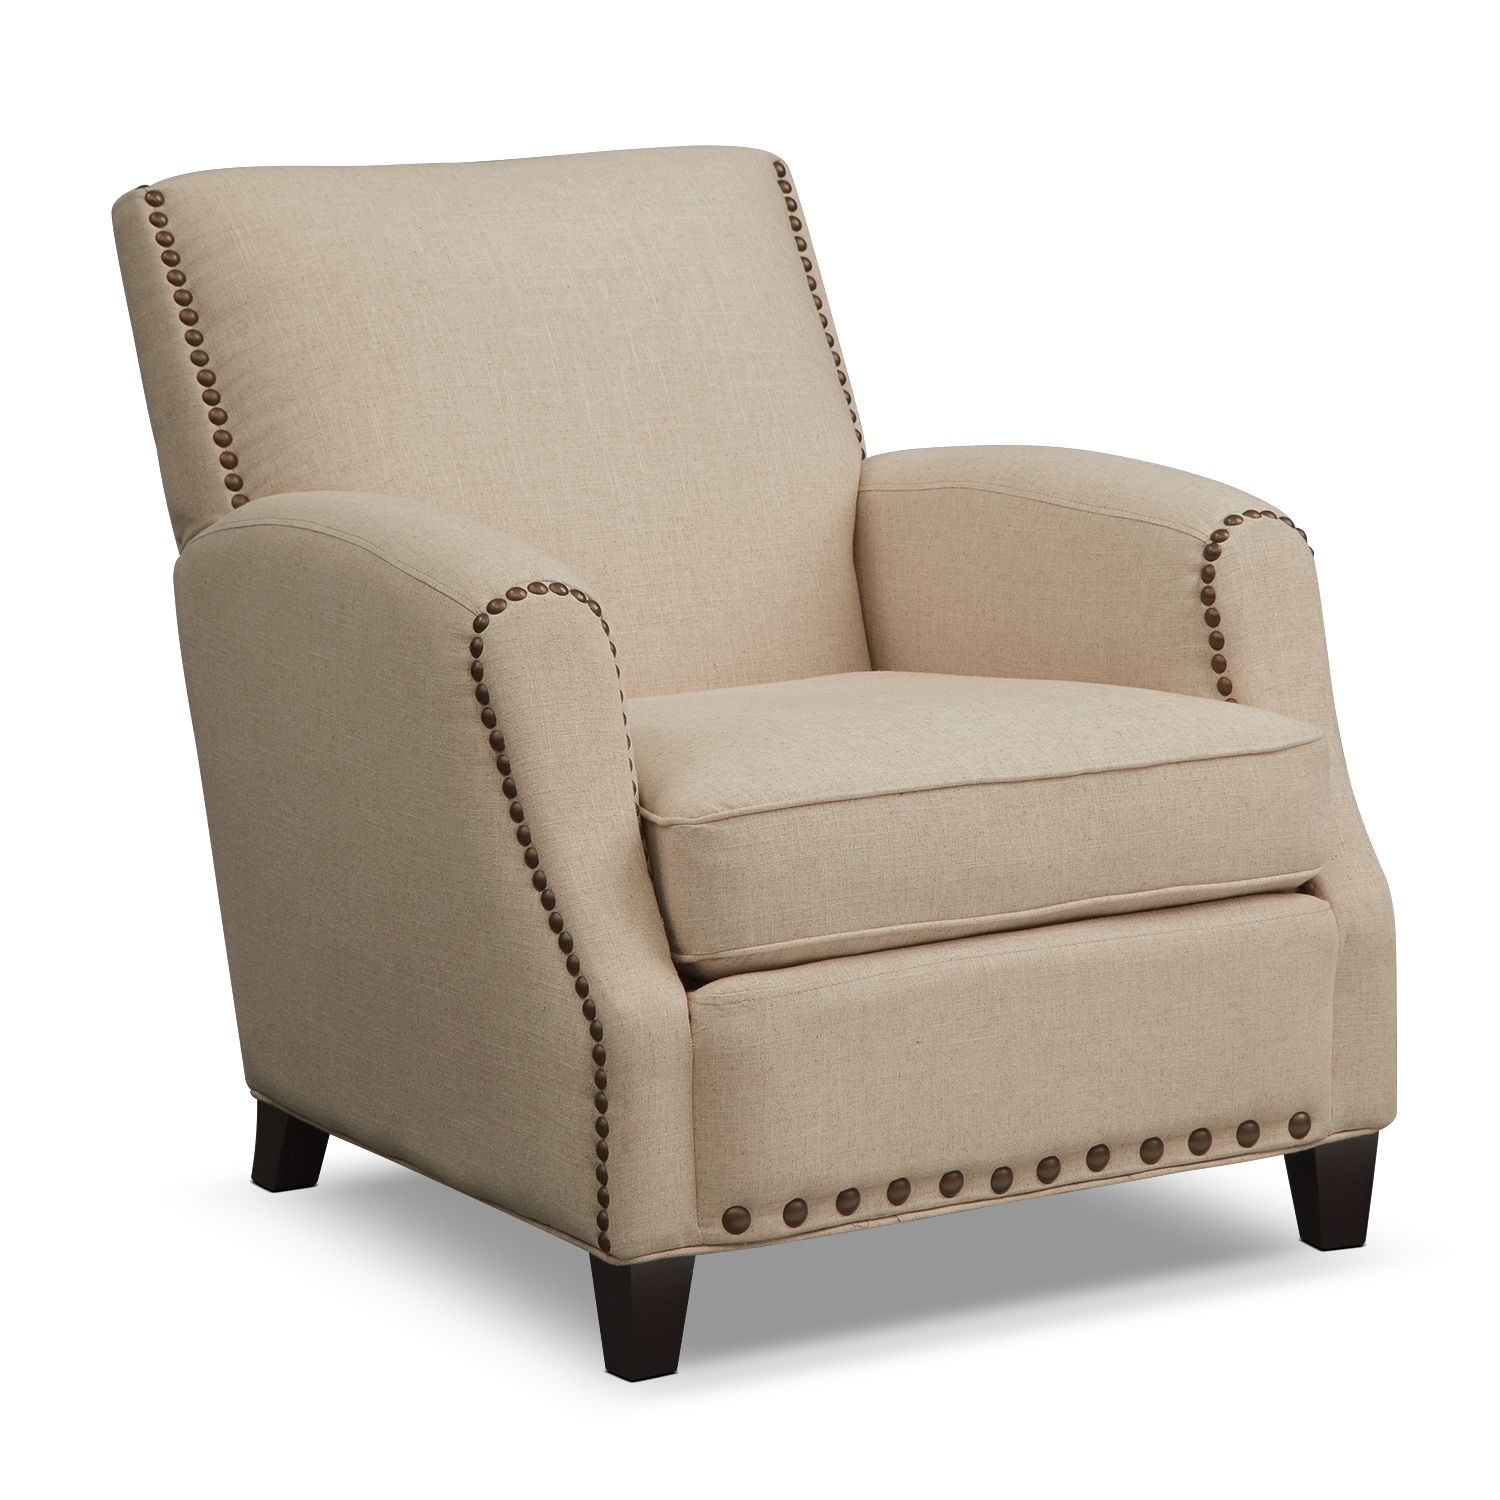 Havana Accent Chair - Beige